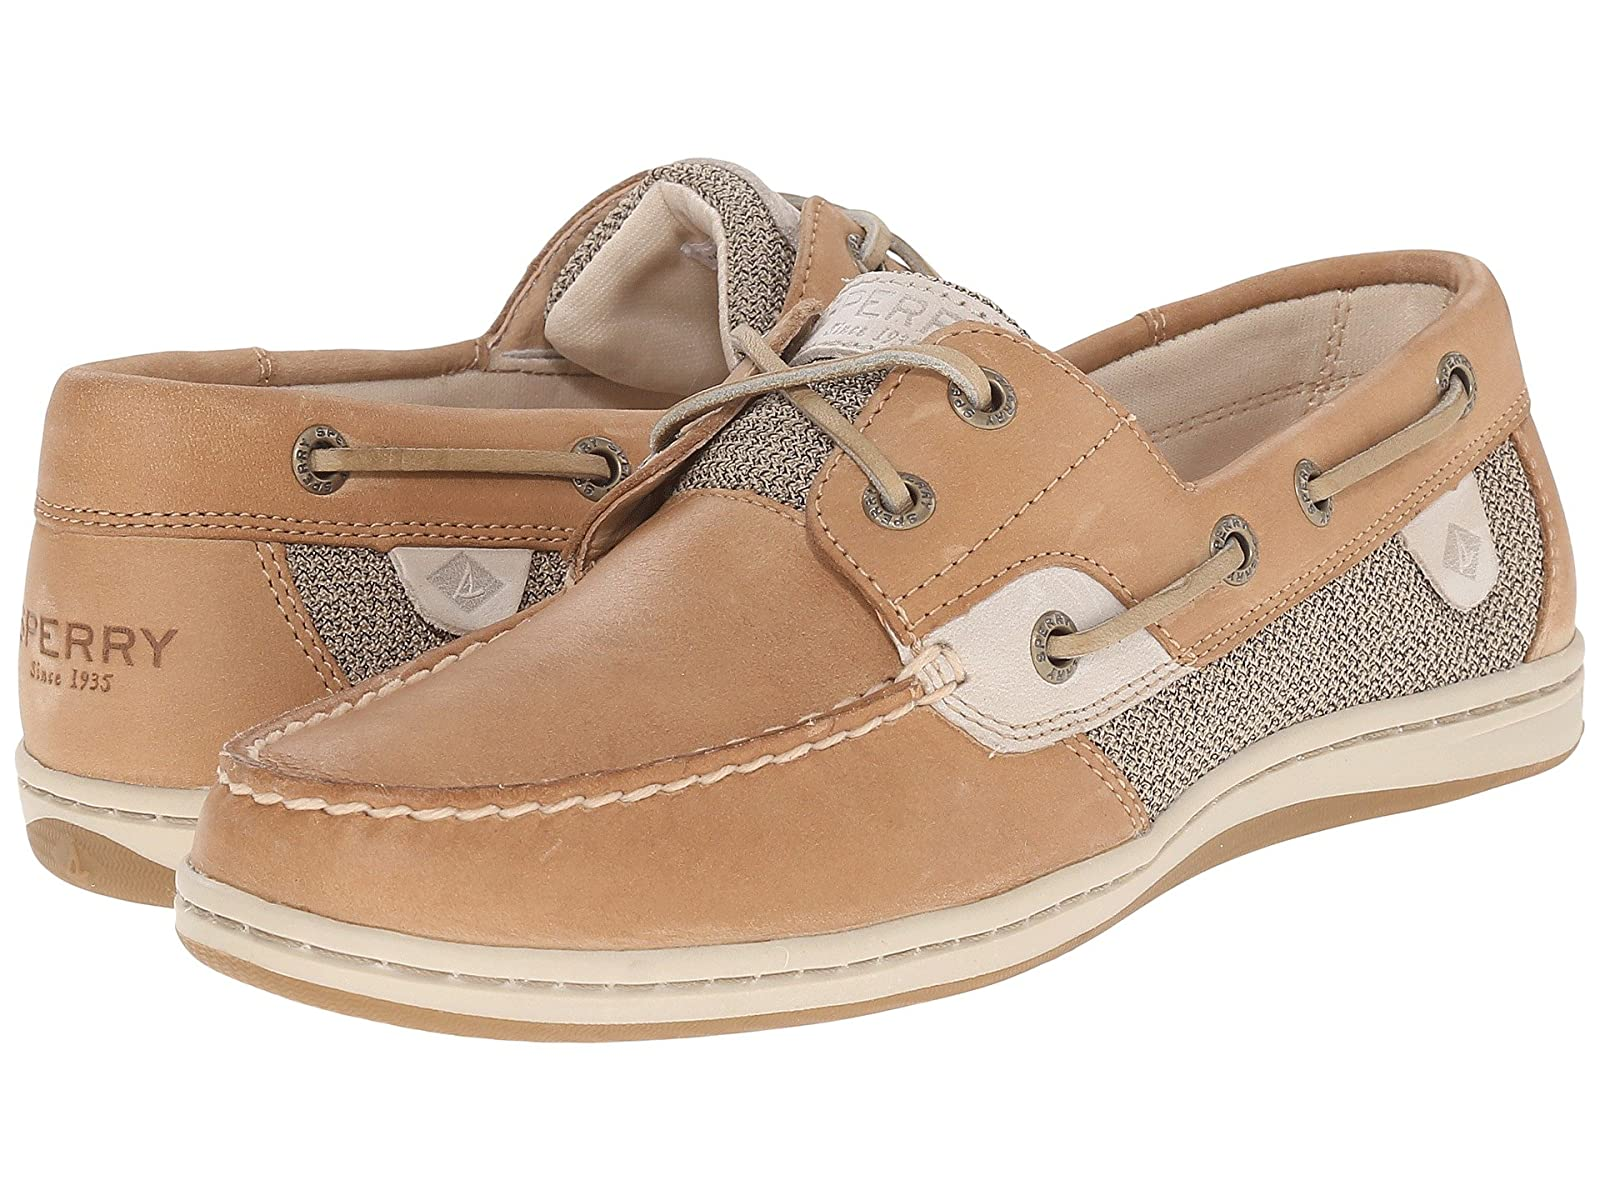 Sperry Koifish CoreSelling fashionable and eye-catching shoes